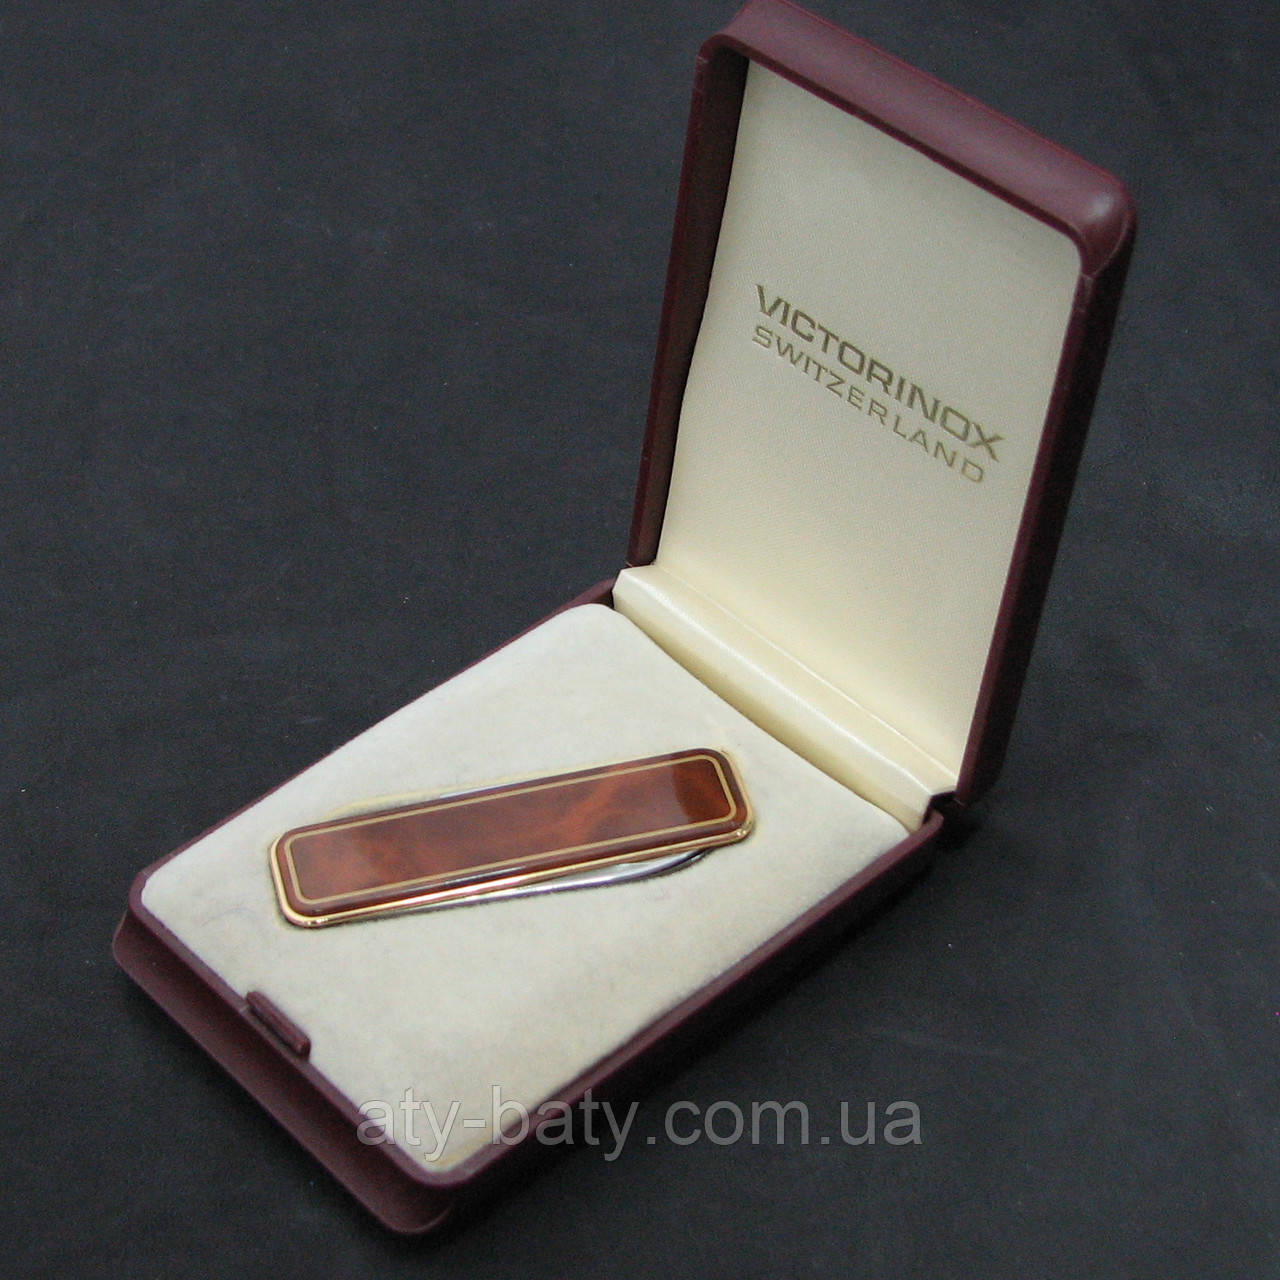 Нож Victorinox Enamelled Brown Marble 0.6210.86, фото 1